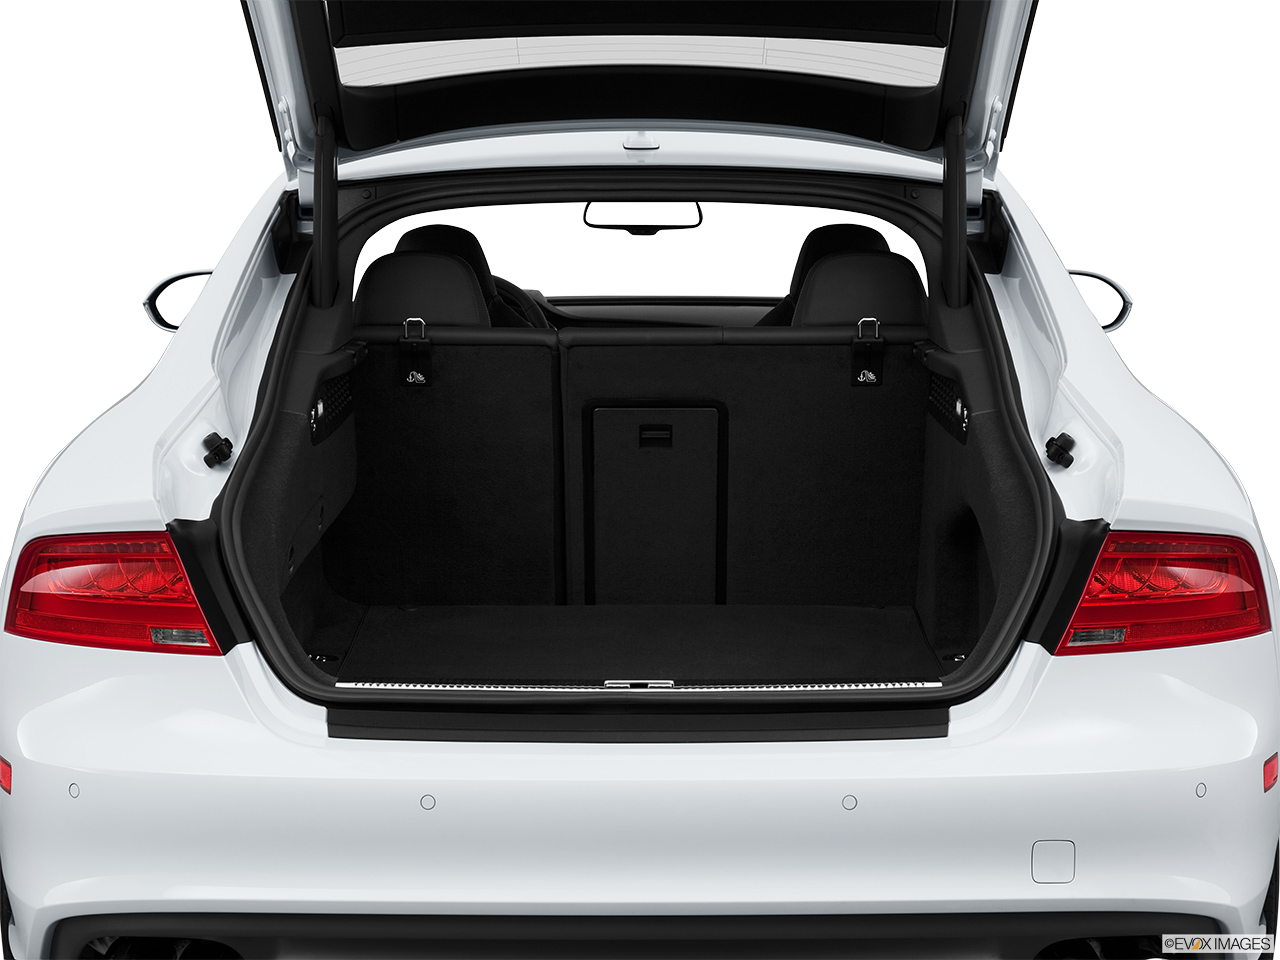 2015 Audi S7 Hatchback Trunk Open